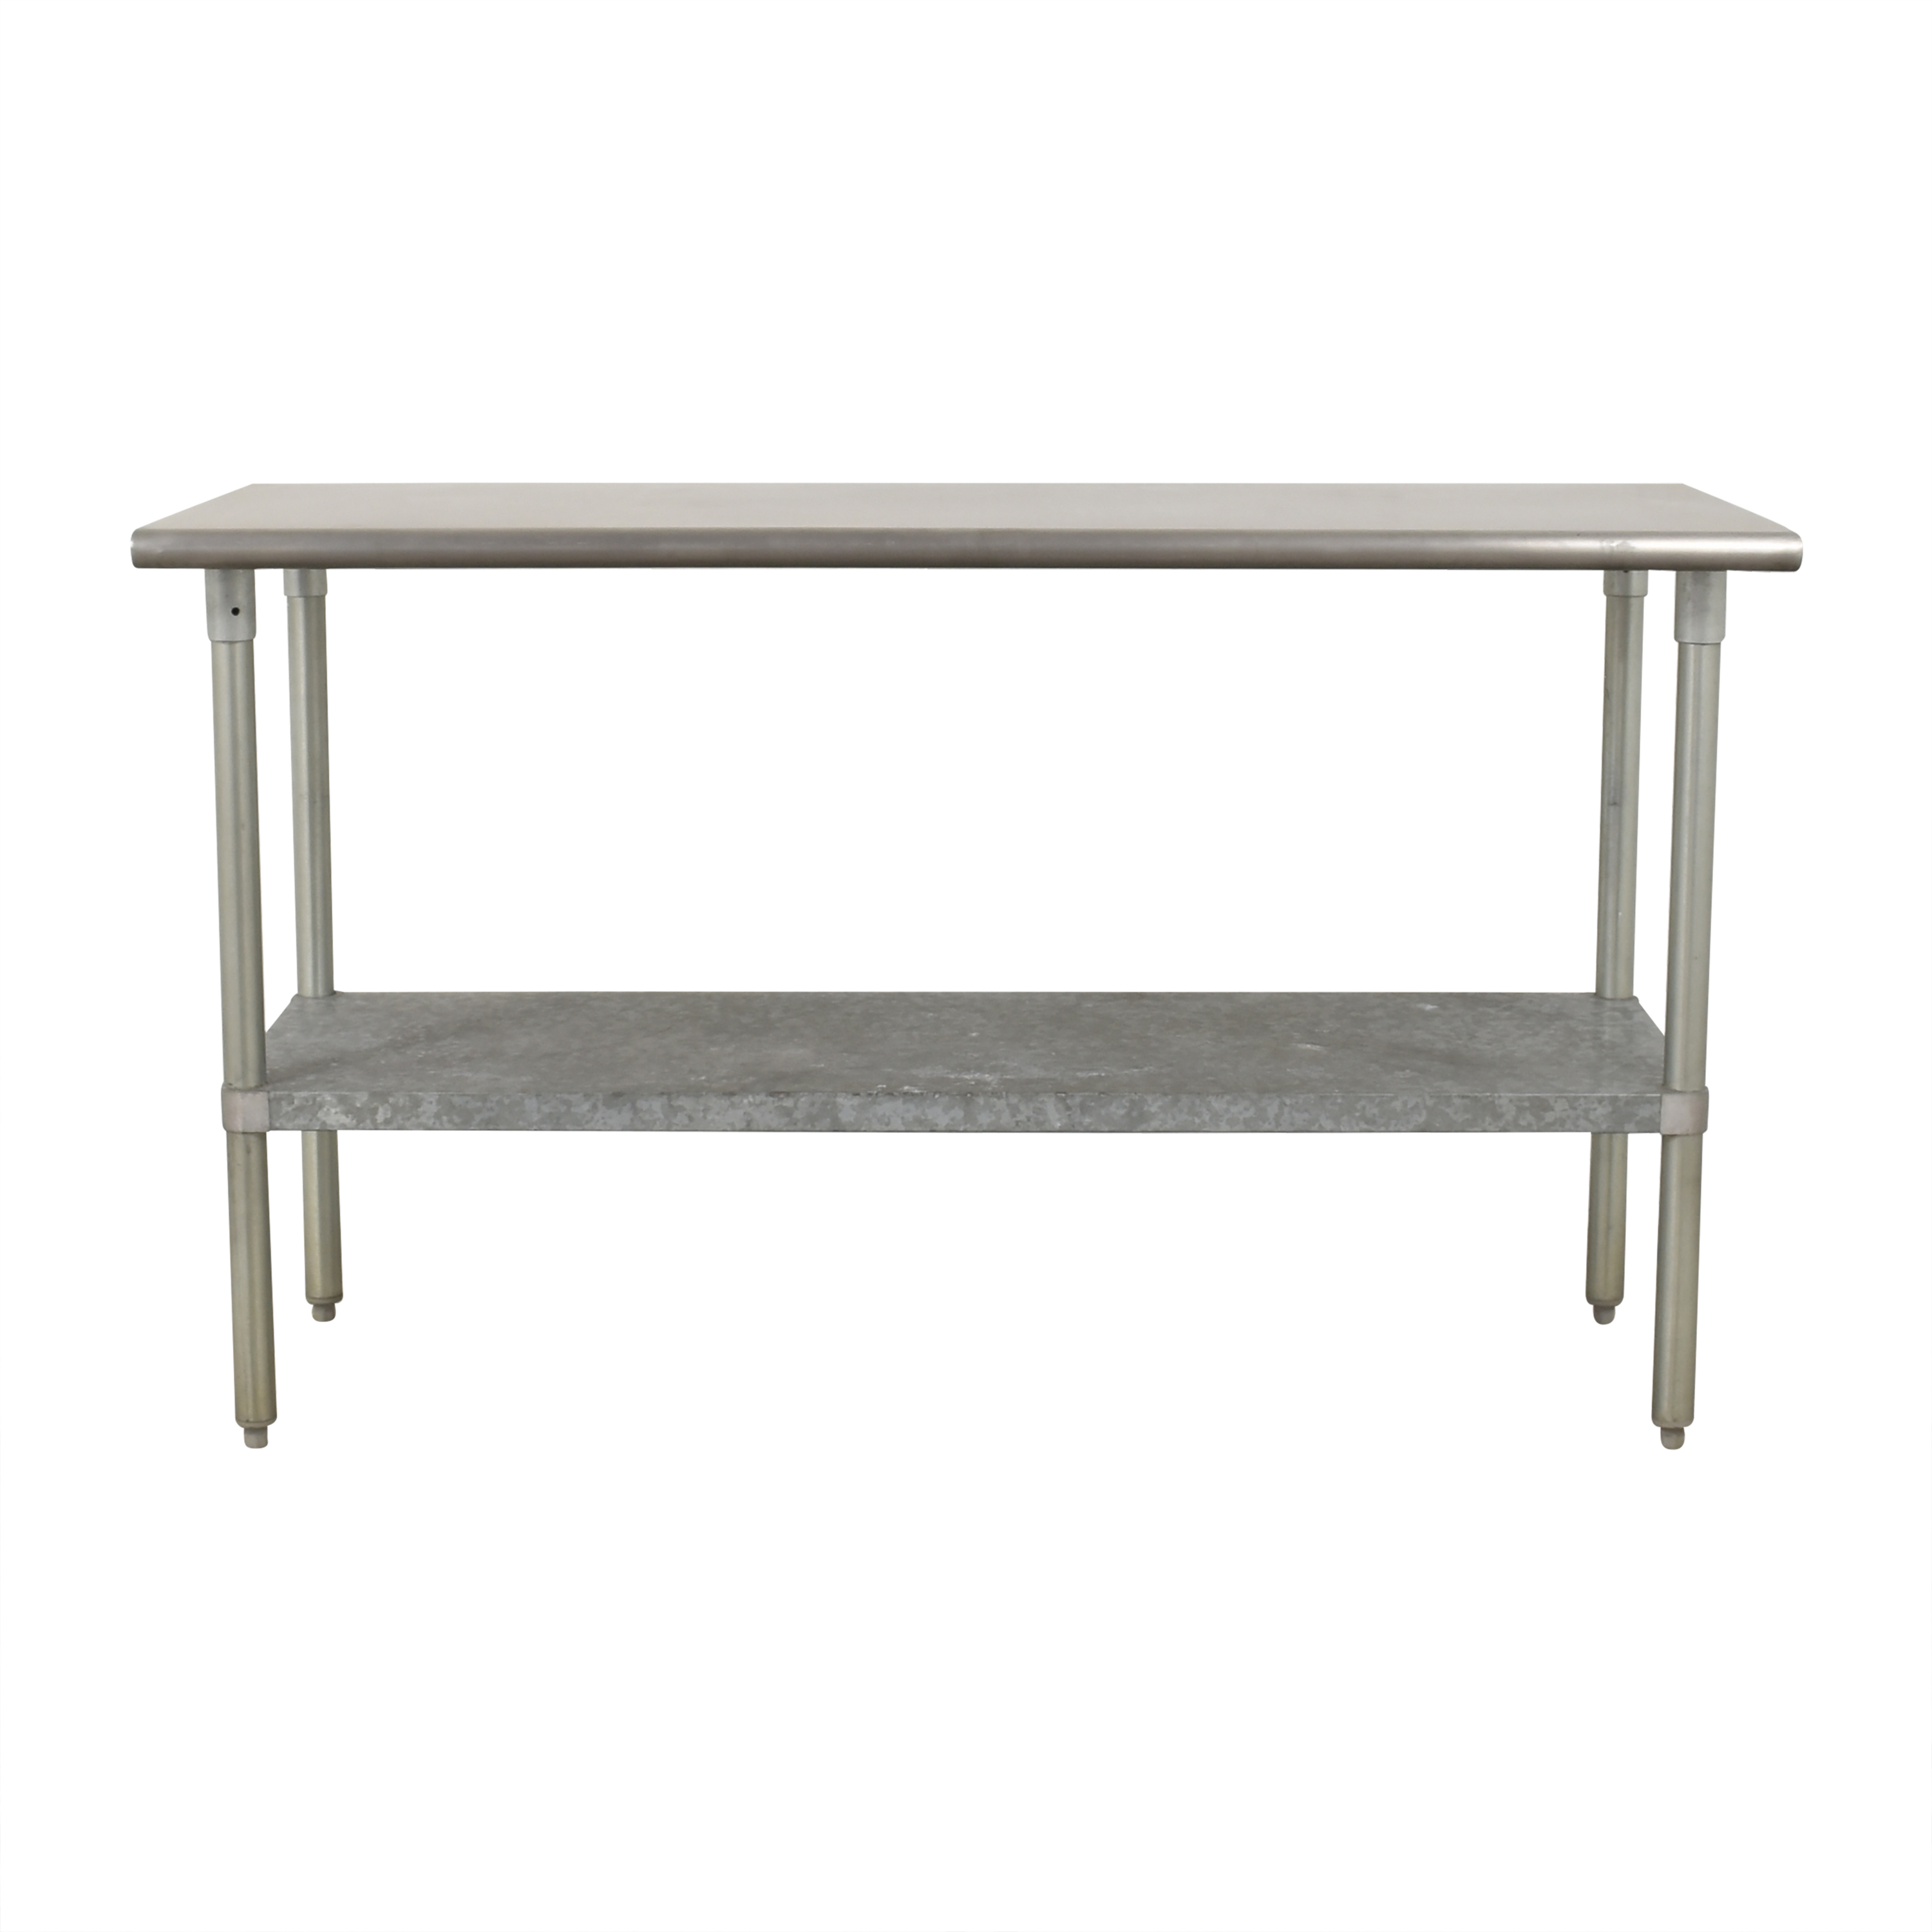 L&J Manufacturing Restaurant Work Table Tables